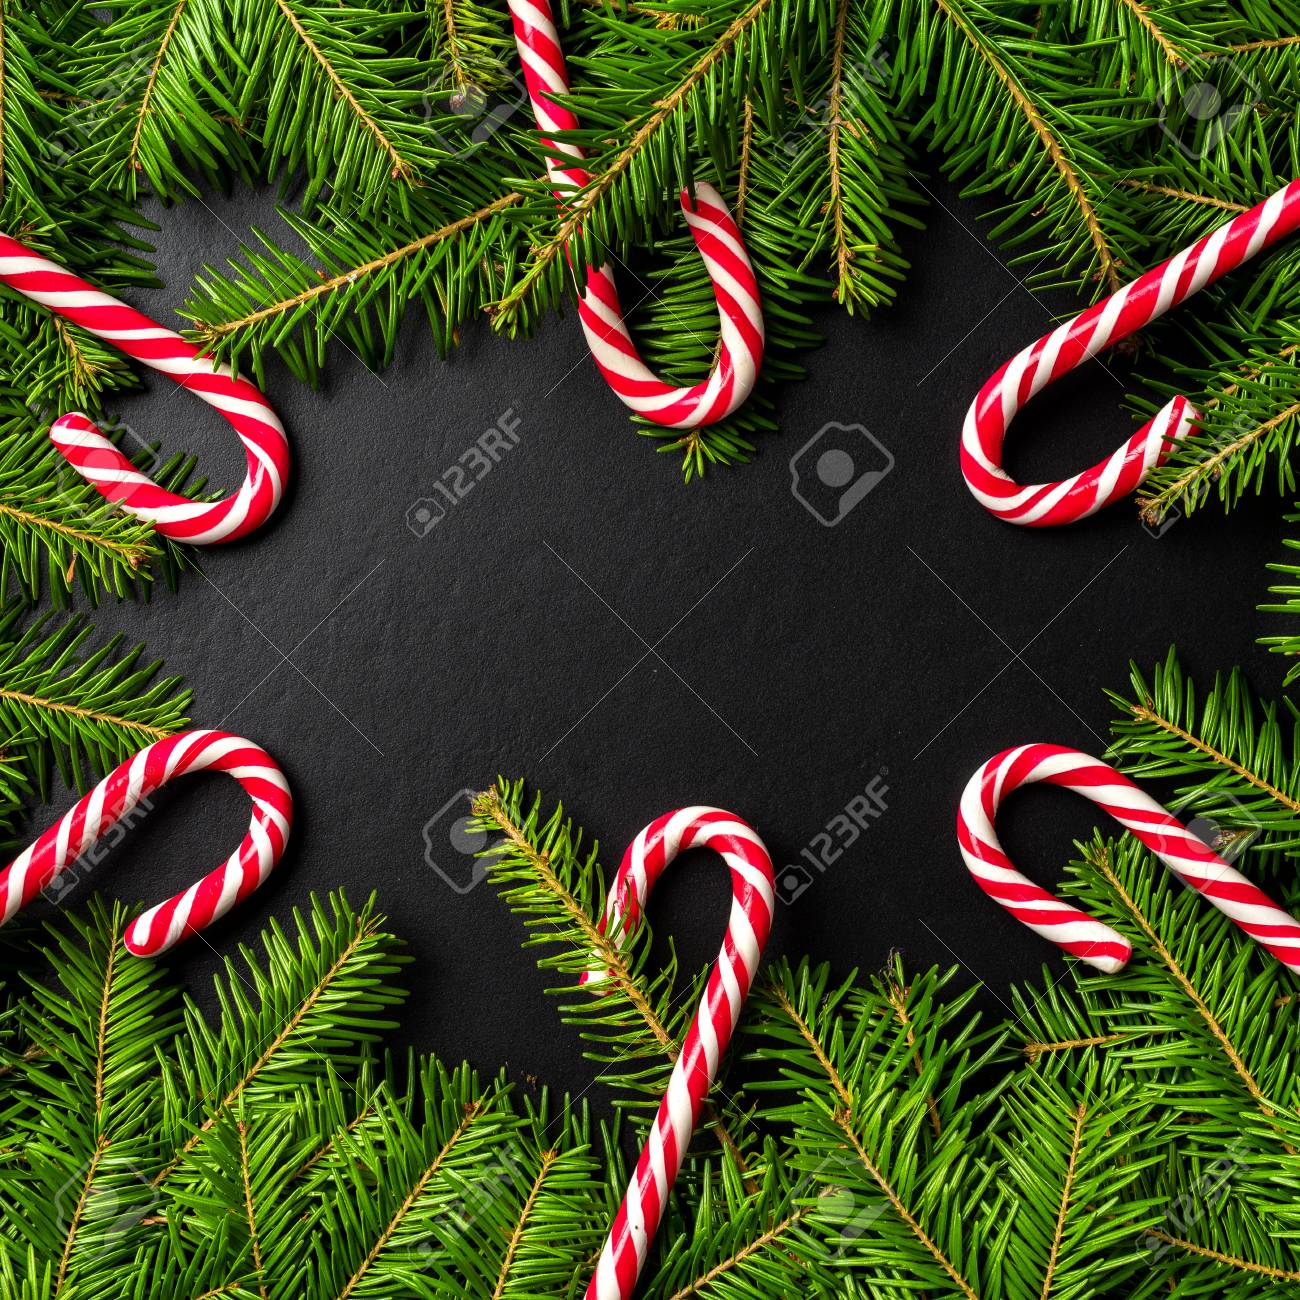 Candy Cane Christmas Tree.Christmas Tree With Candy Cane Background With Copyspace